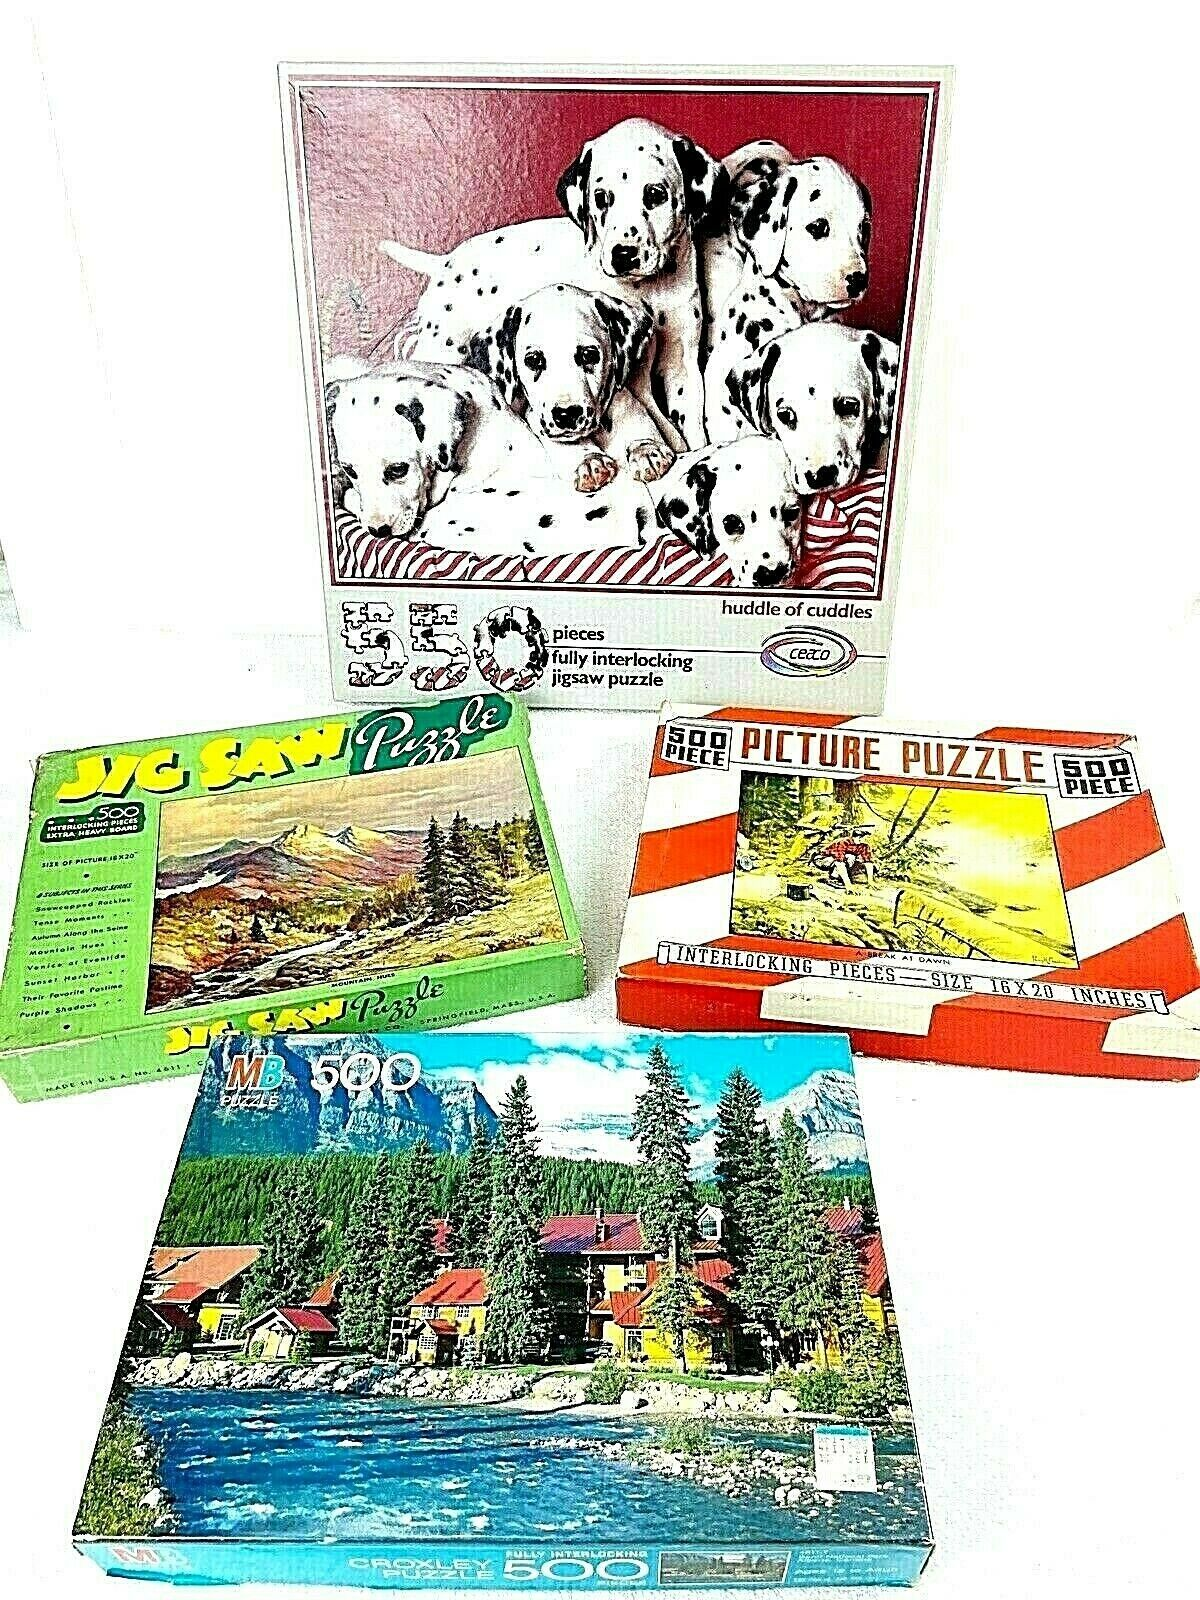 Jigsaw Puzzles Lot of 4 Variety Vintage and Modern Banff Puppies Mountains USA - $14.84